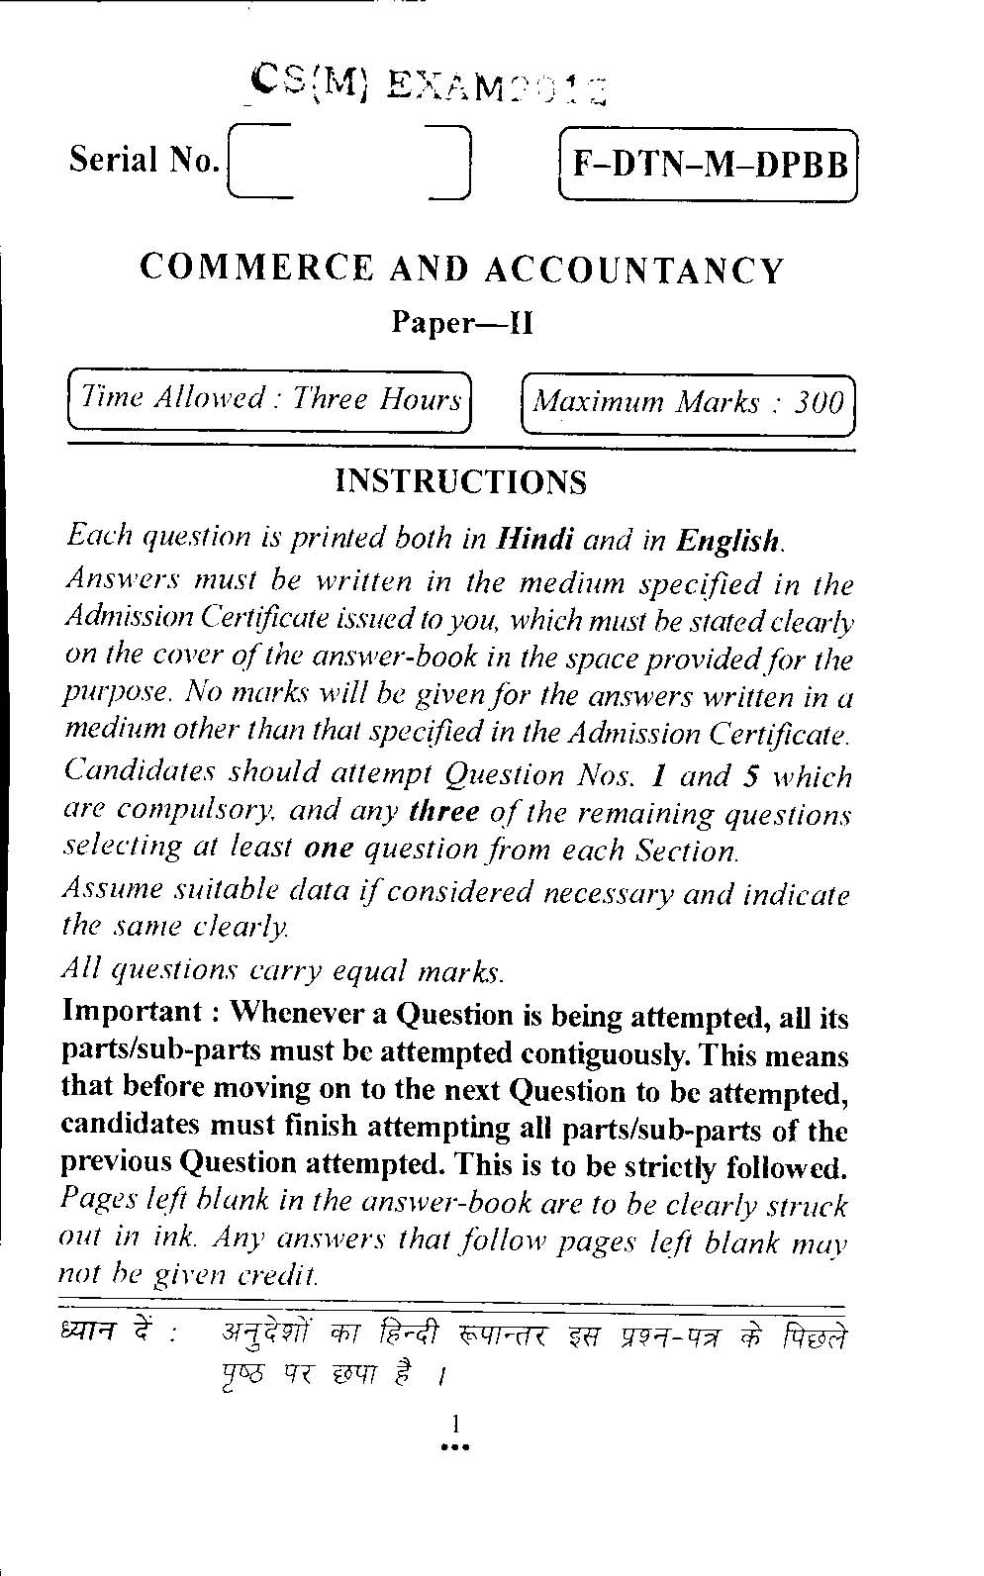 007 Racism Today Essay Civil Services Examination Commerce And Accountancy Paper Ii Previous Years Que Dreaded